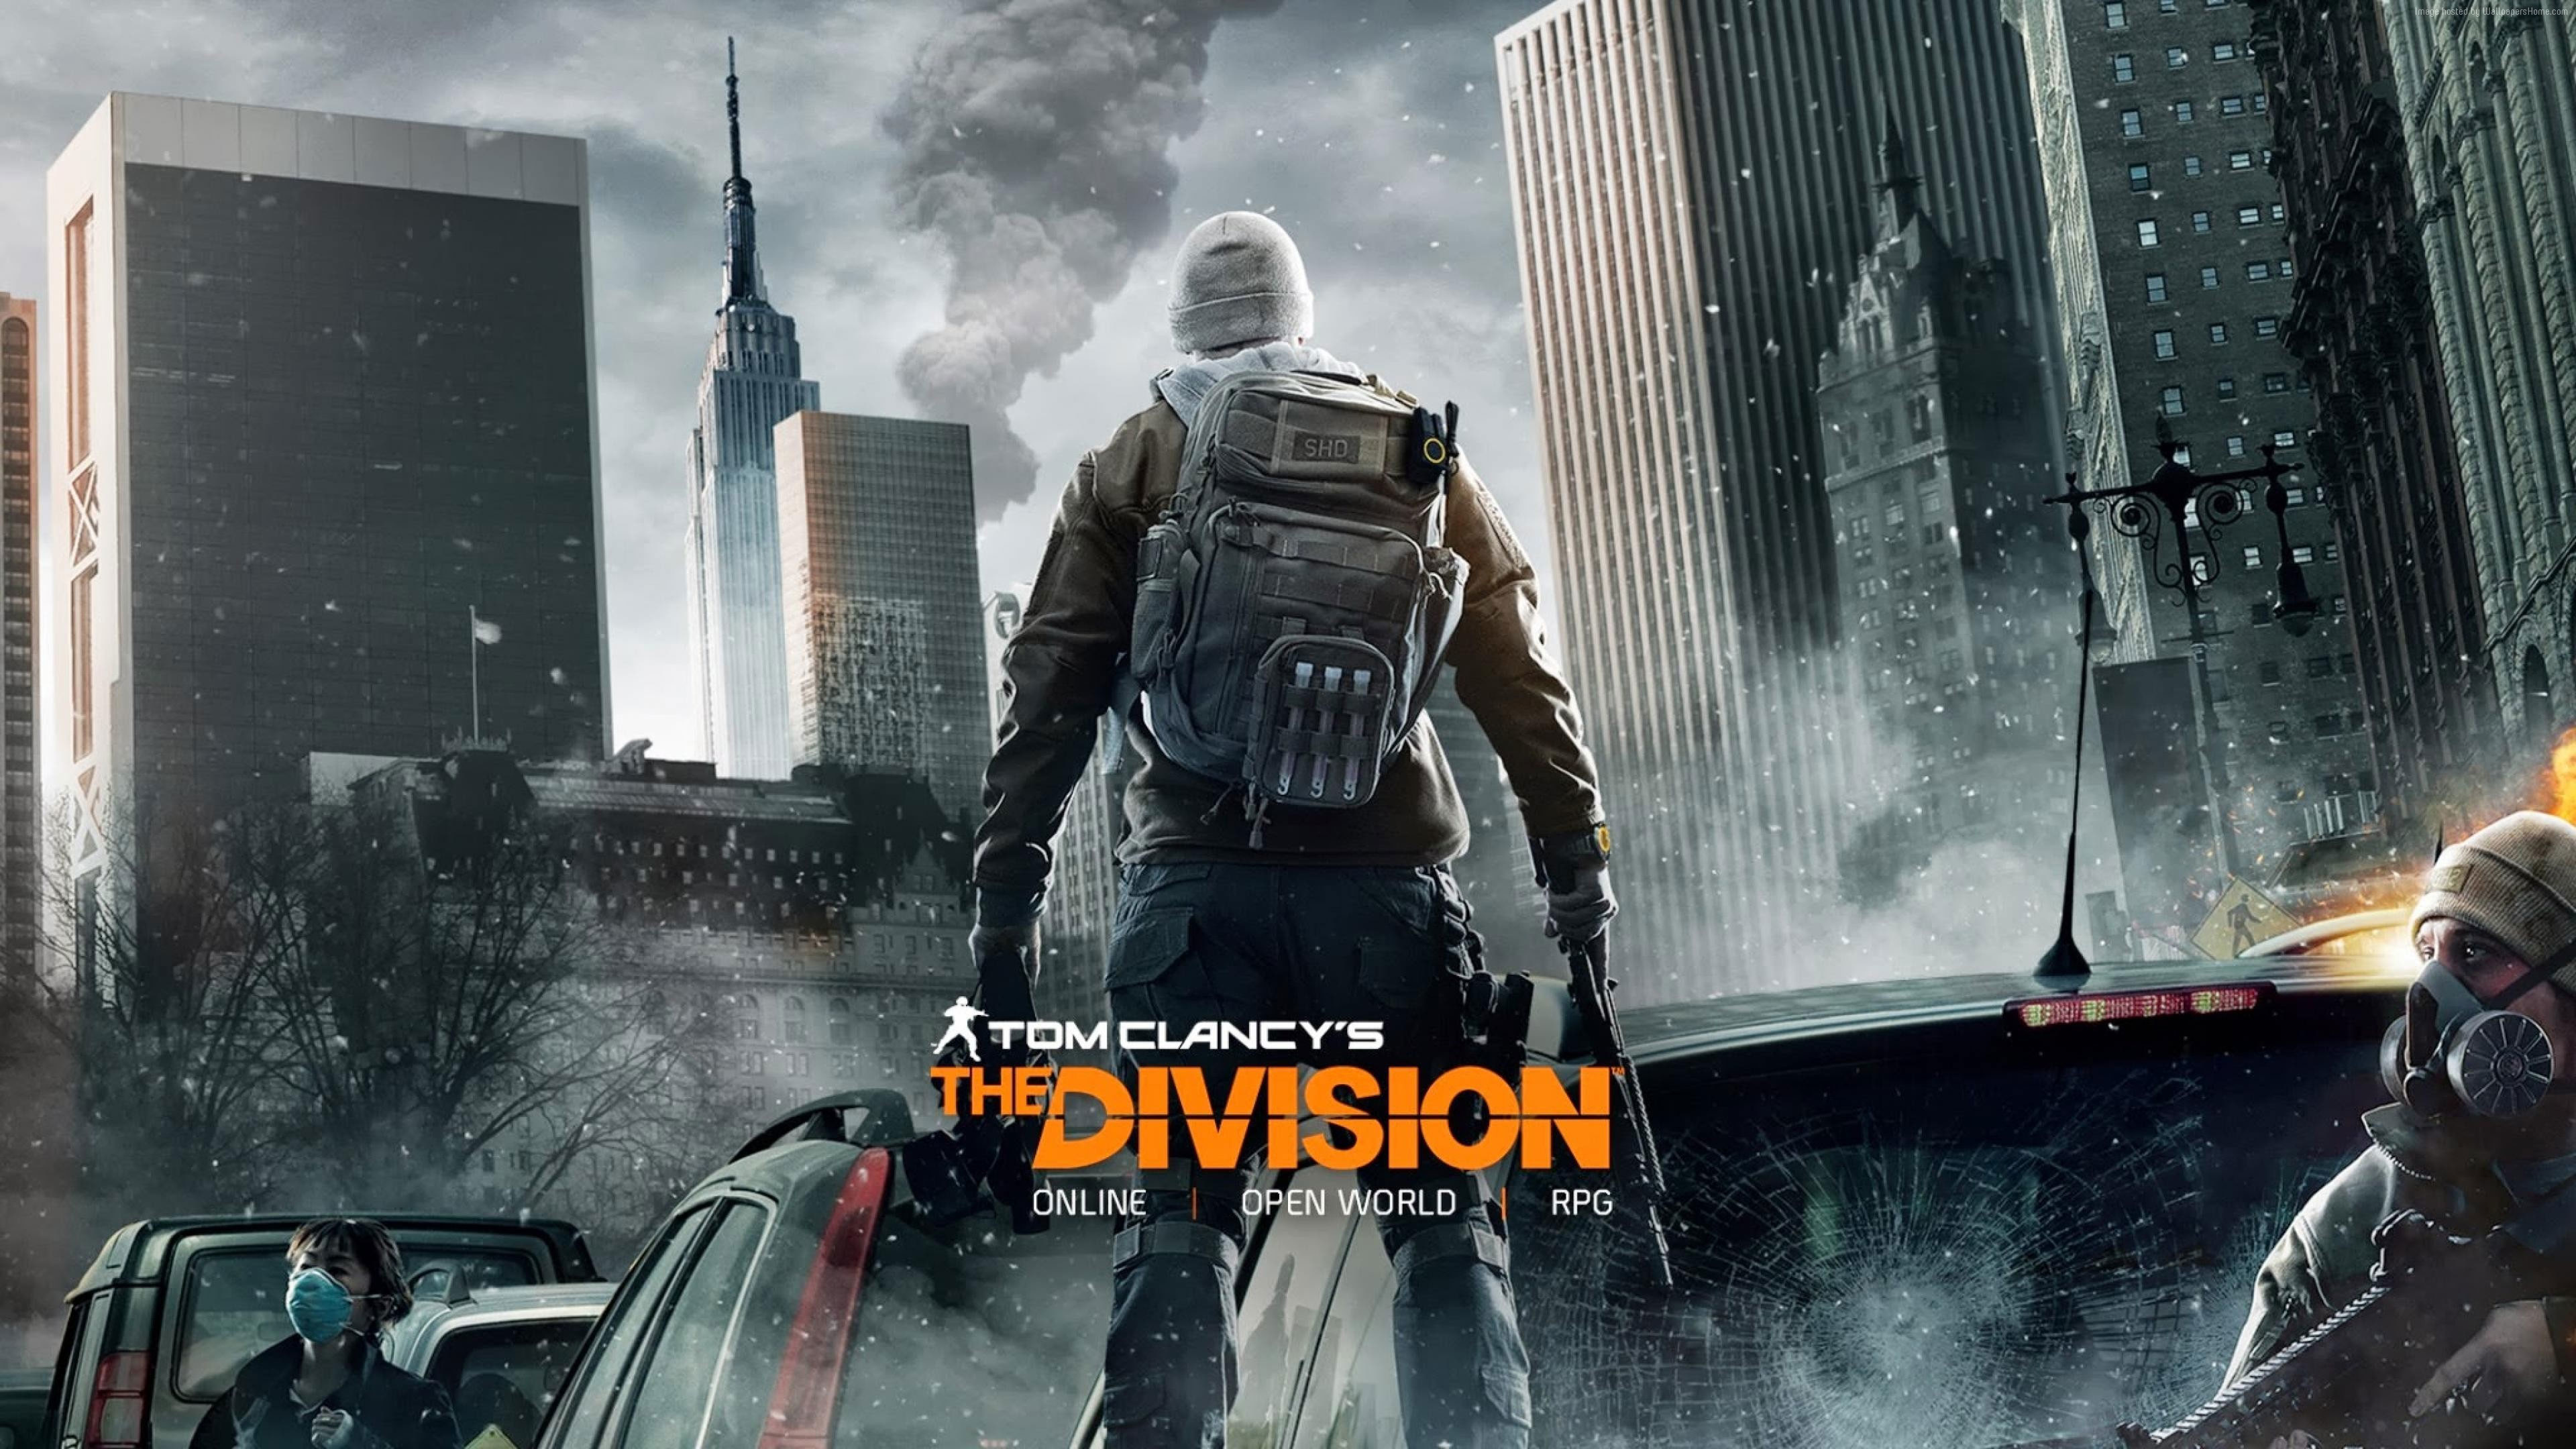 The Division 4K Wallpaper …